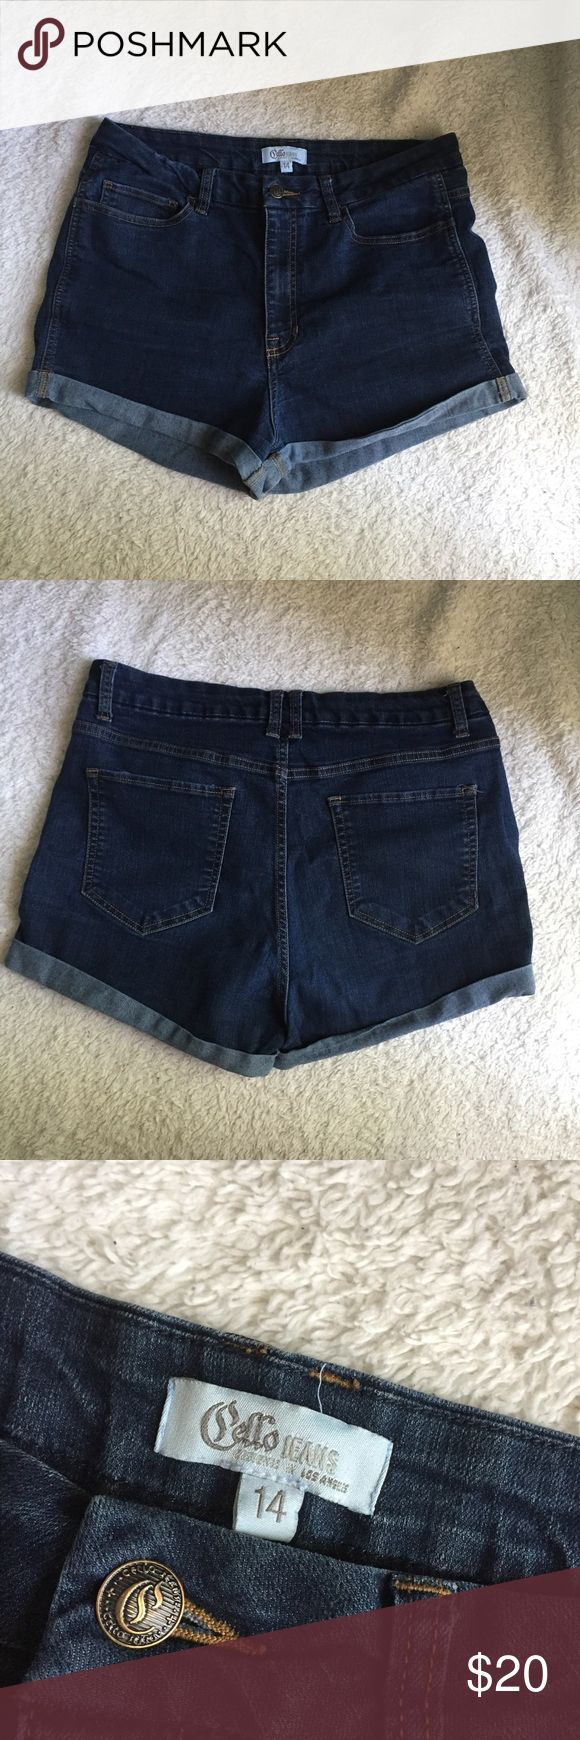 Women's high waist jean shorts Worn a few times, in great condition! Shorts Jean Shorts